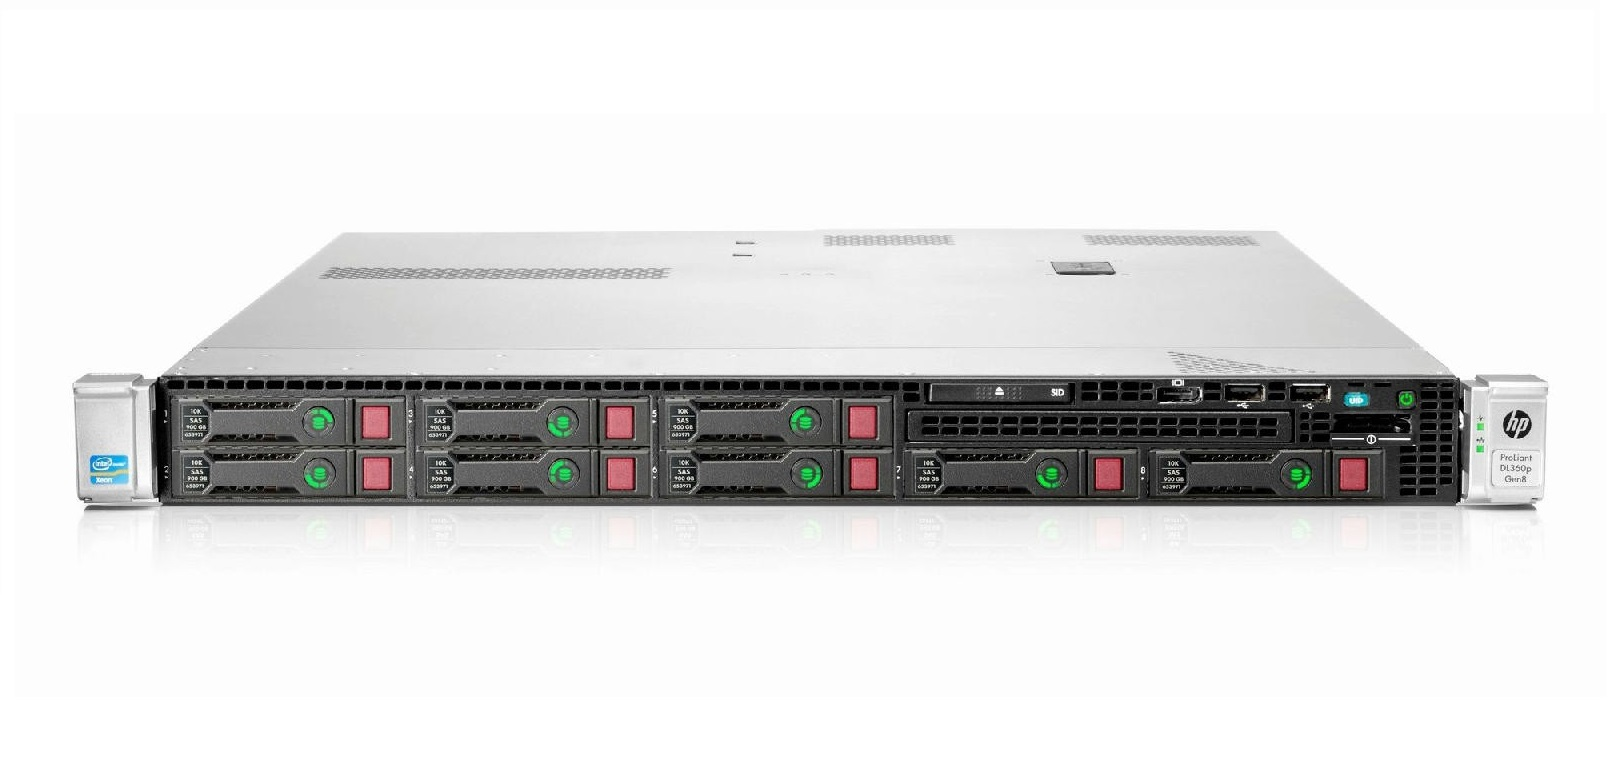 HP ProLiant DL360p Gen8 Intel Xeon E5-2630 2.3GHz 16GB 2x300GB Server M6D72A 677199-001